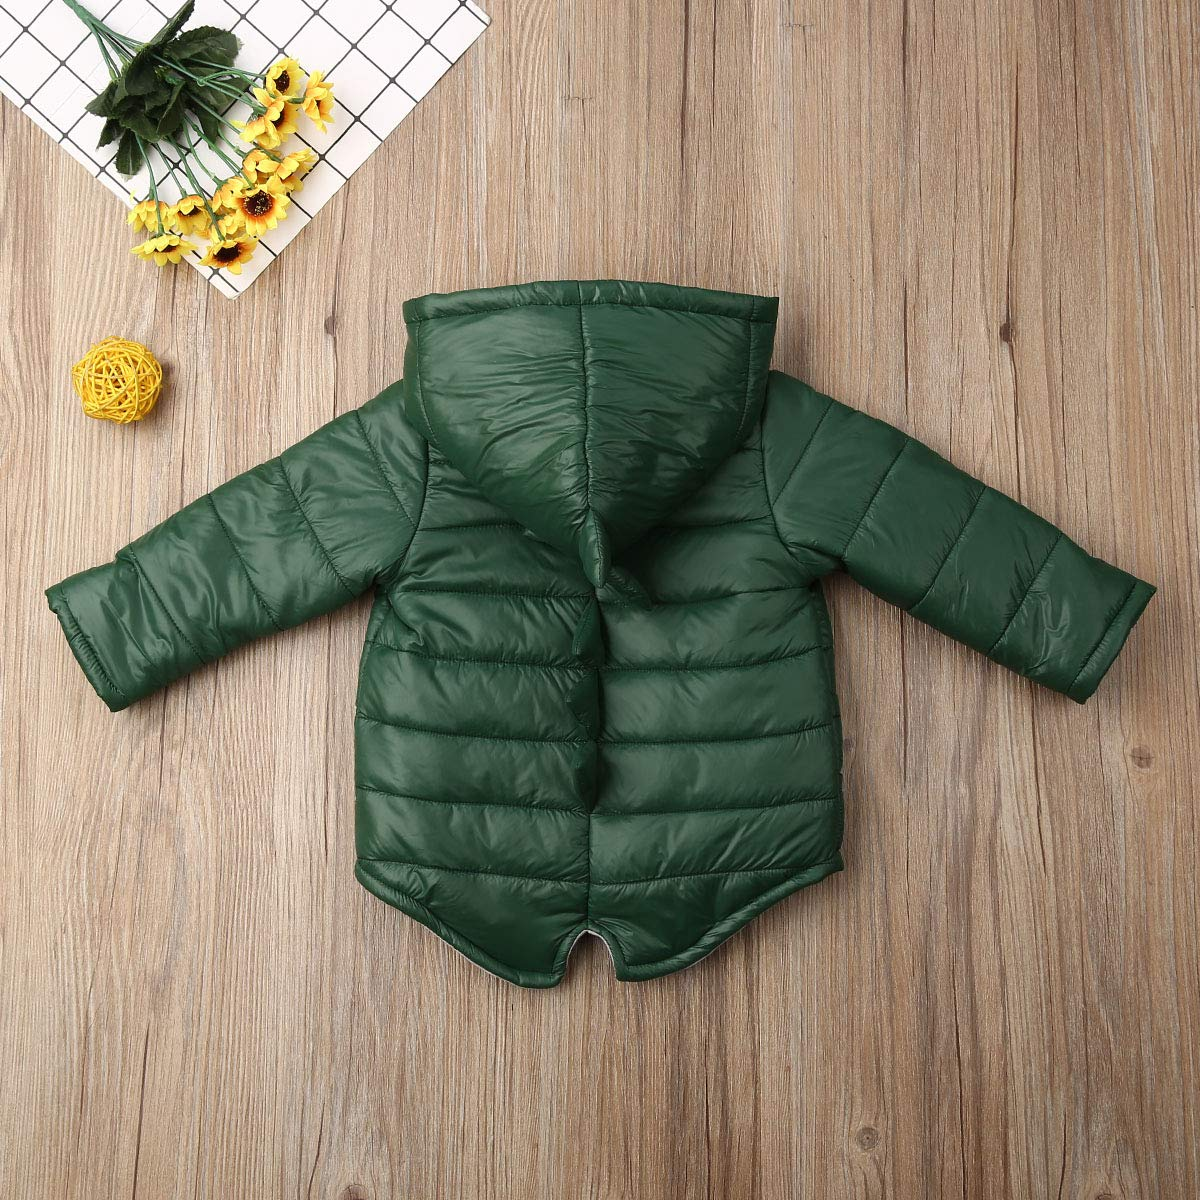 Toddler Baby Boys Girls Long Sleeve Pullover Hoodie Tops Cartoon Jacket Winter Clothes